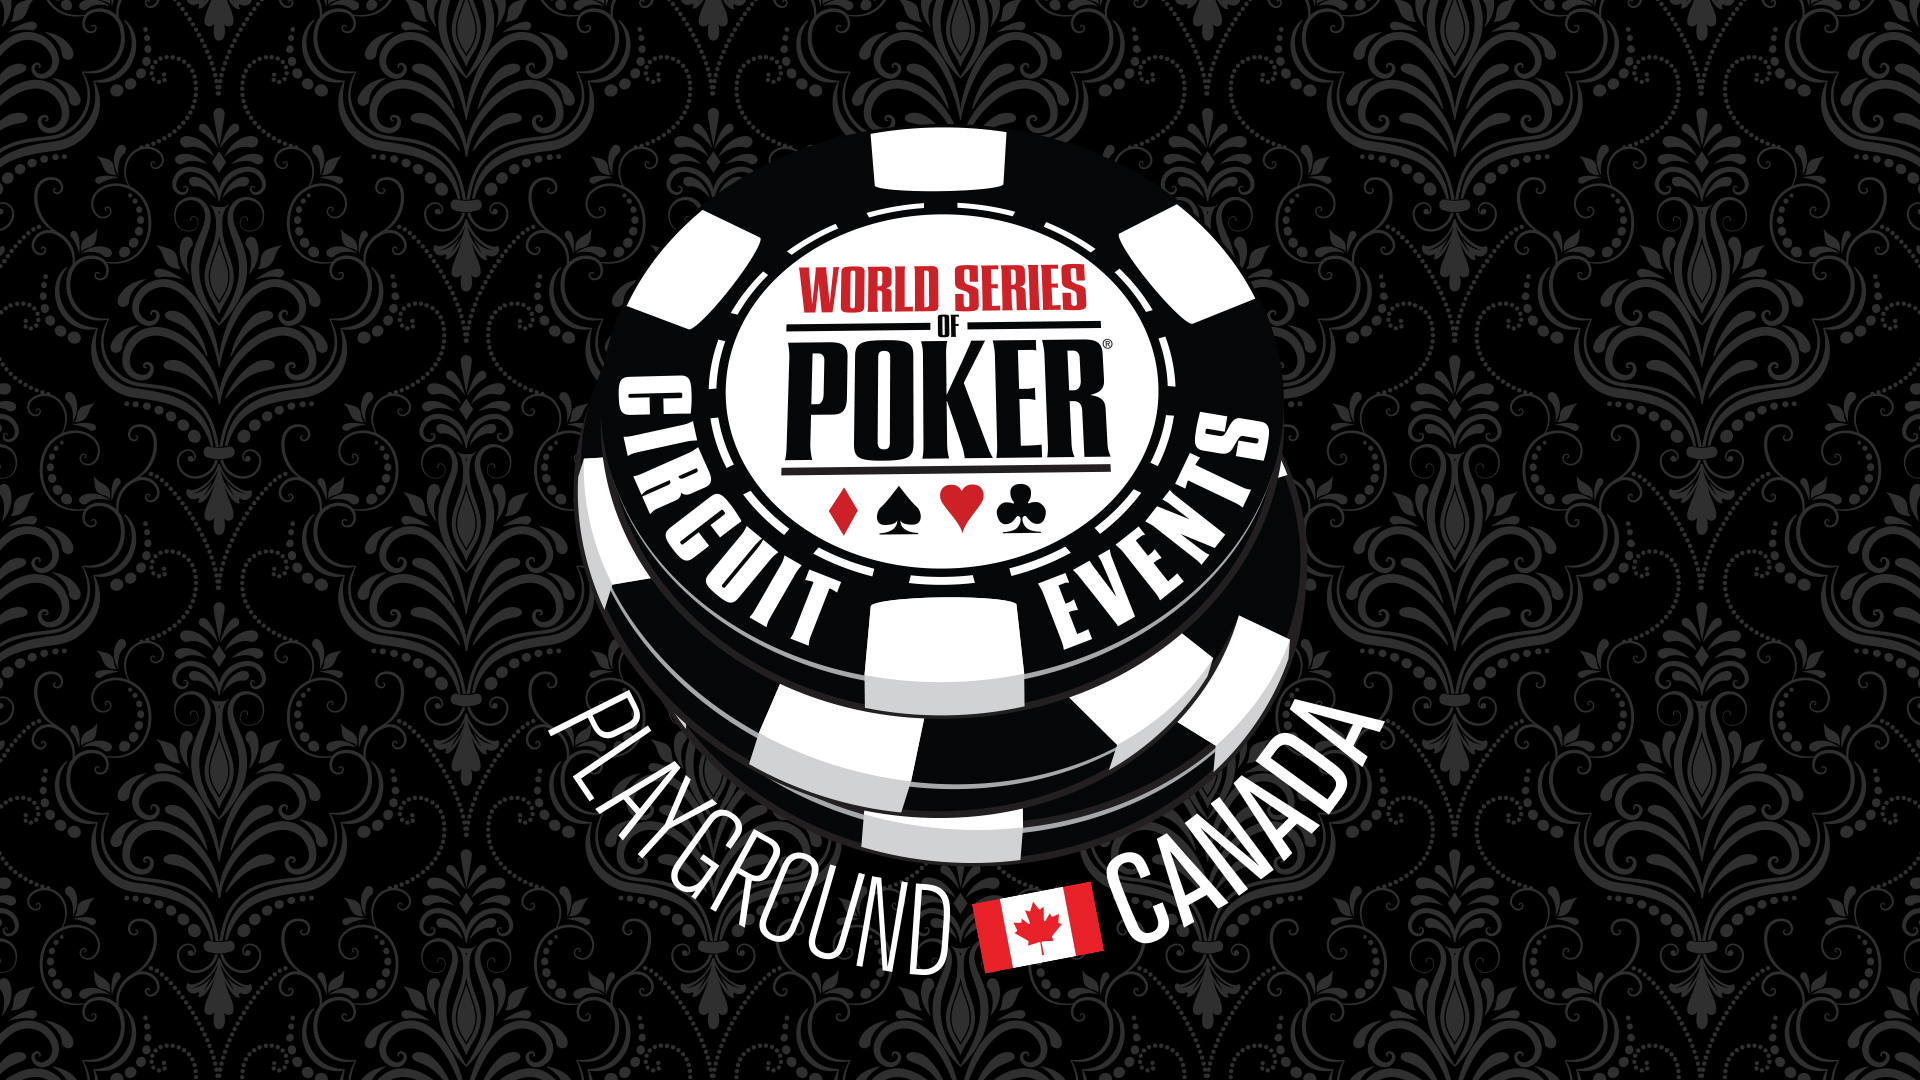 WSOP-C Playground – the full schedule!